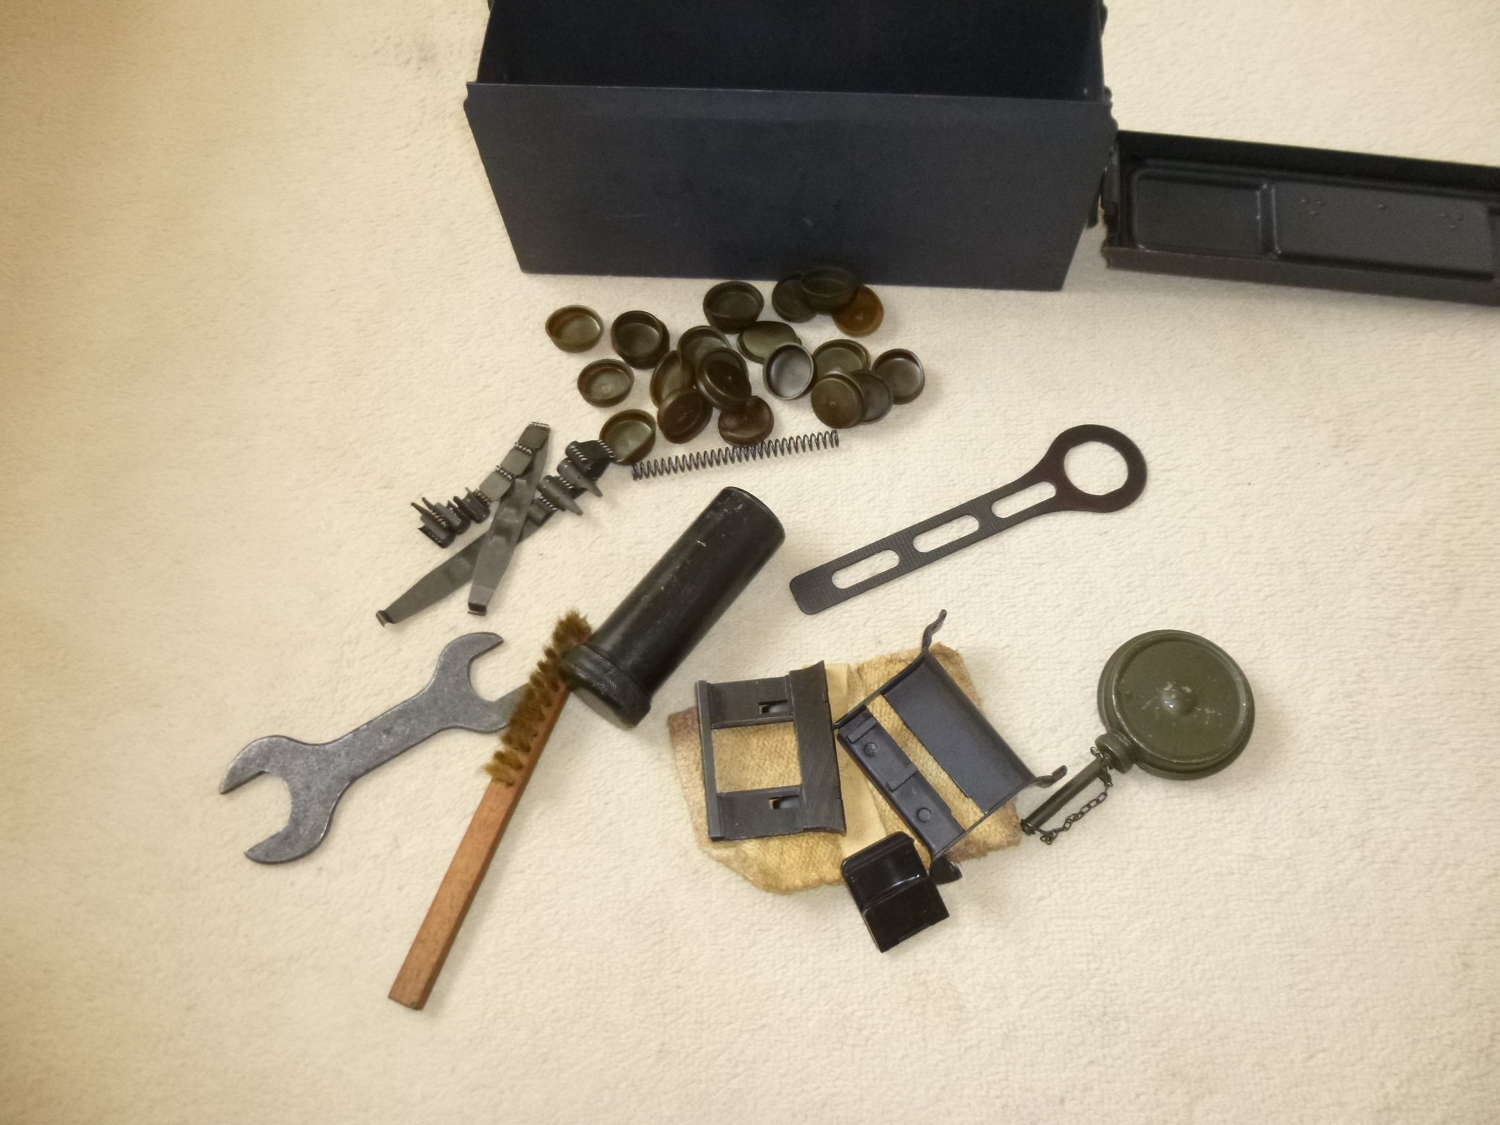 Wehrmacht MG34 E (Ersatzteilen) tin with spare parts and tools